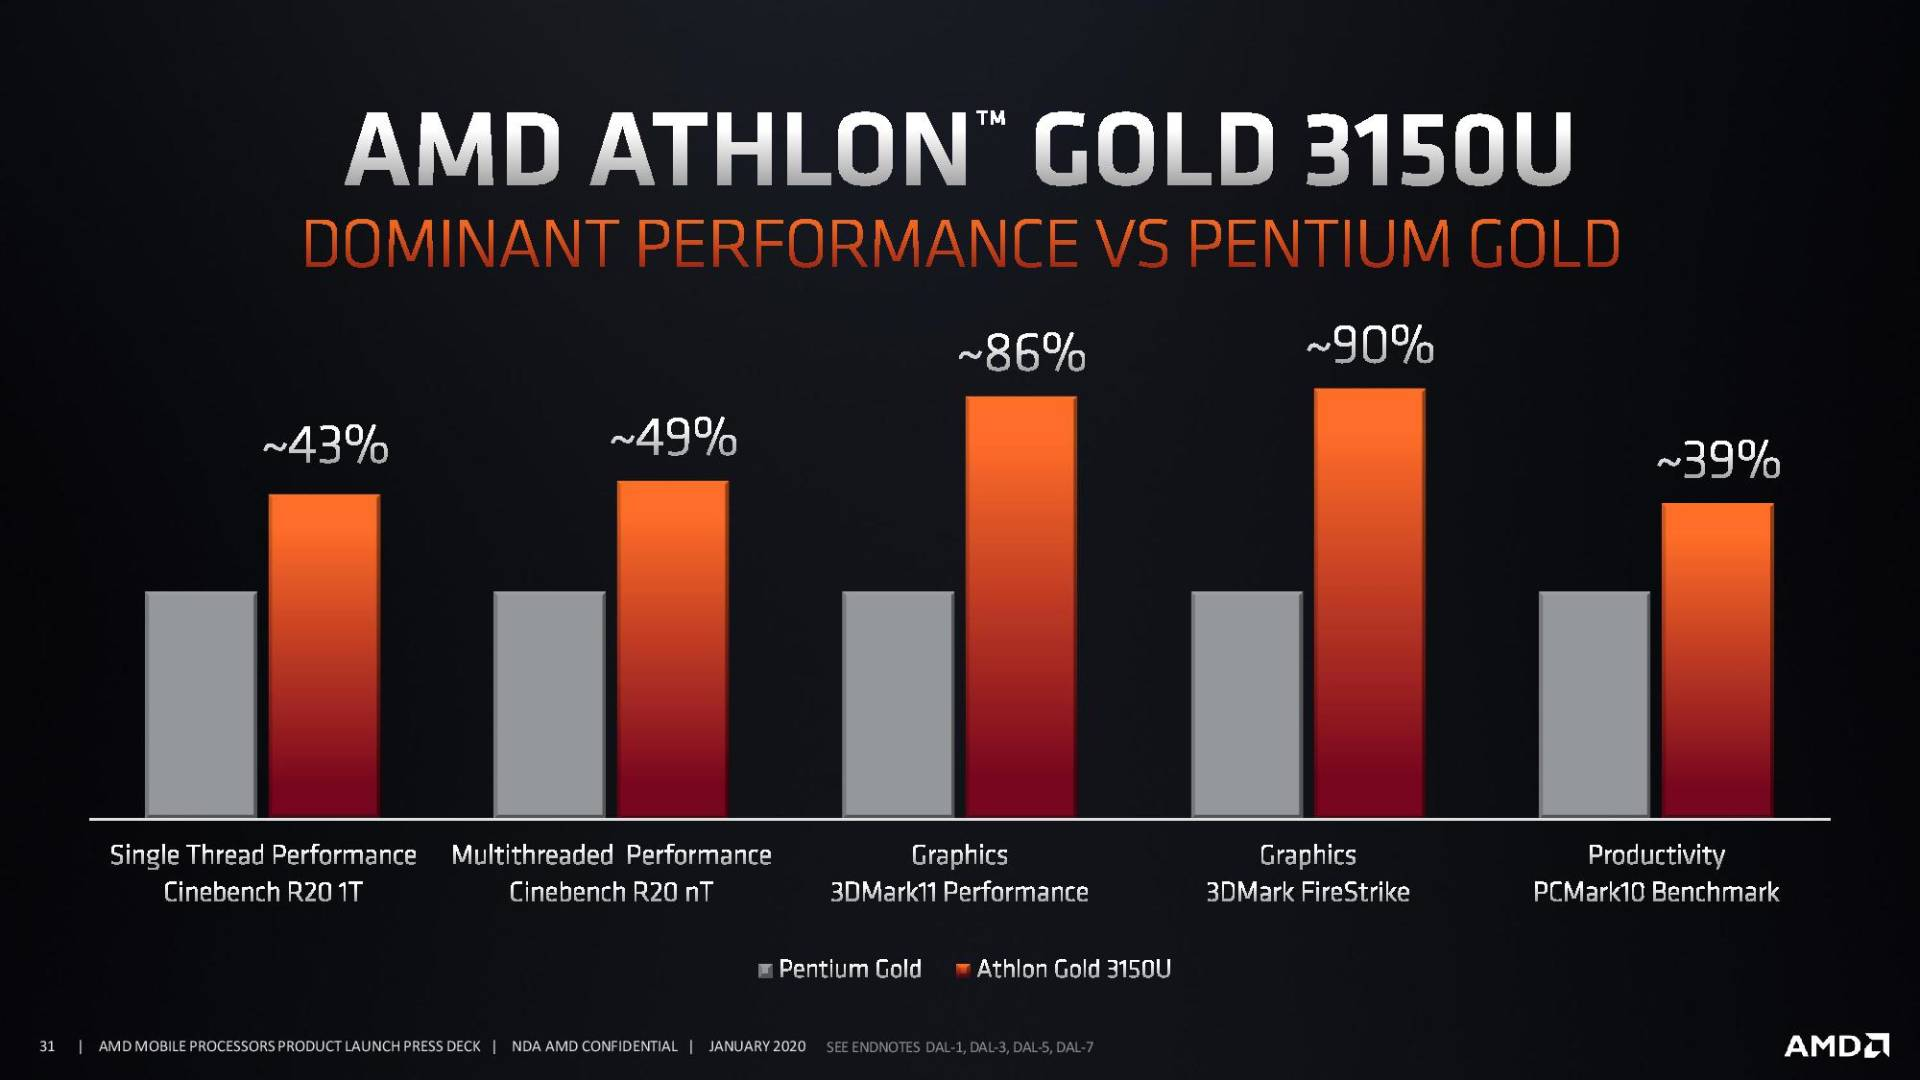 AMD Athlon Gold 3000